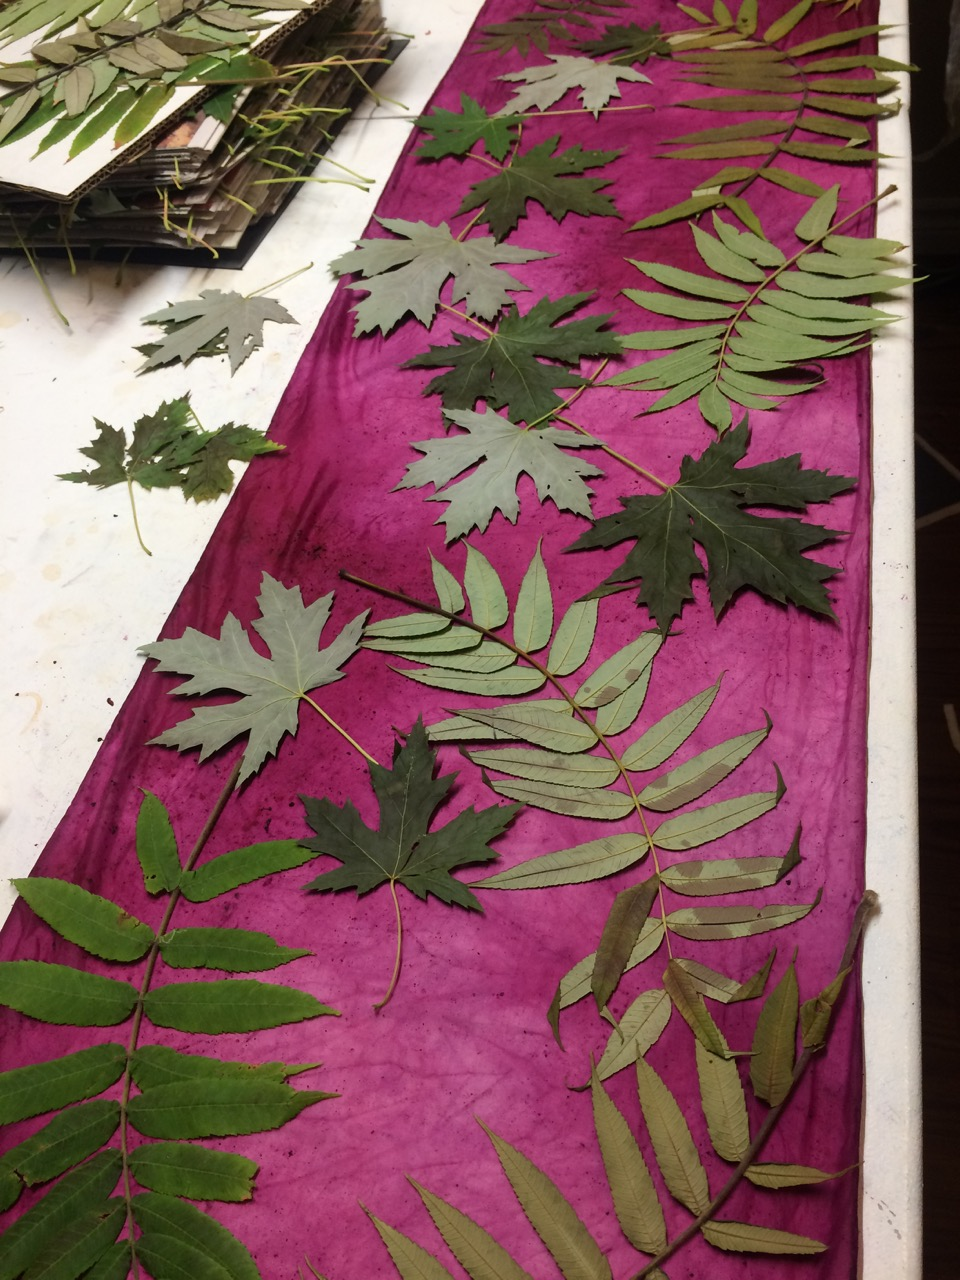 Picture of Design With Leaves